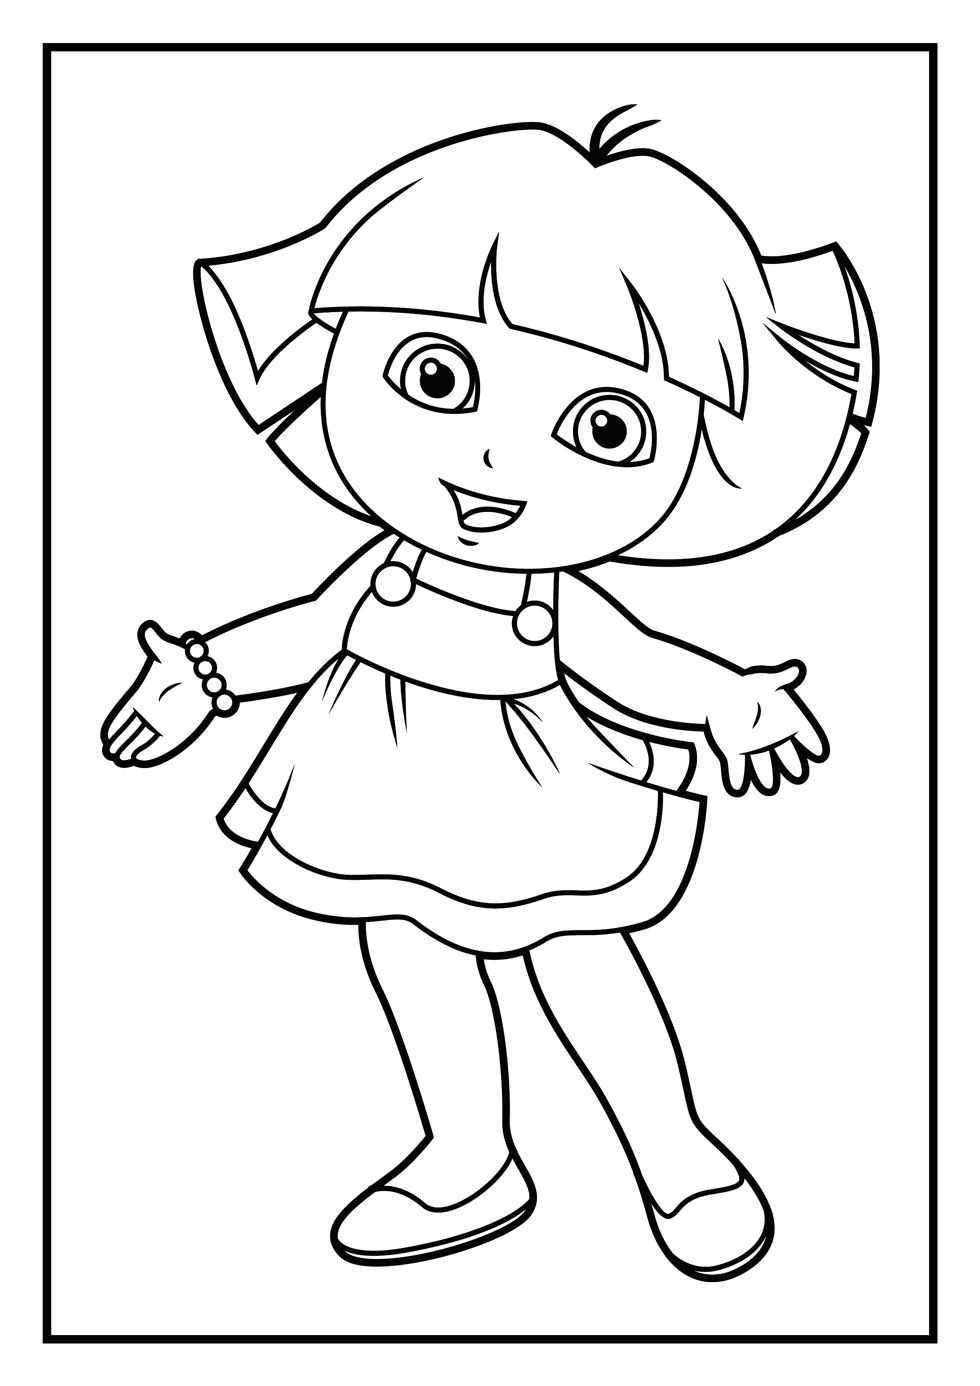 Dora Coloring Pages Only Coloring Pages Dora Coloring Cartoon Coloring Pages Dance Coloring Pages